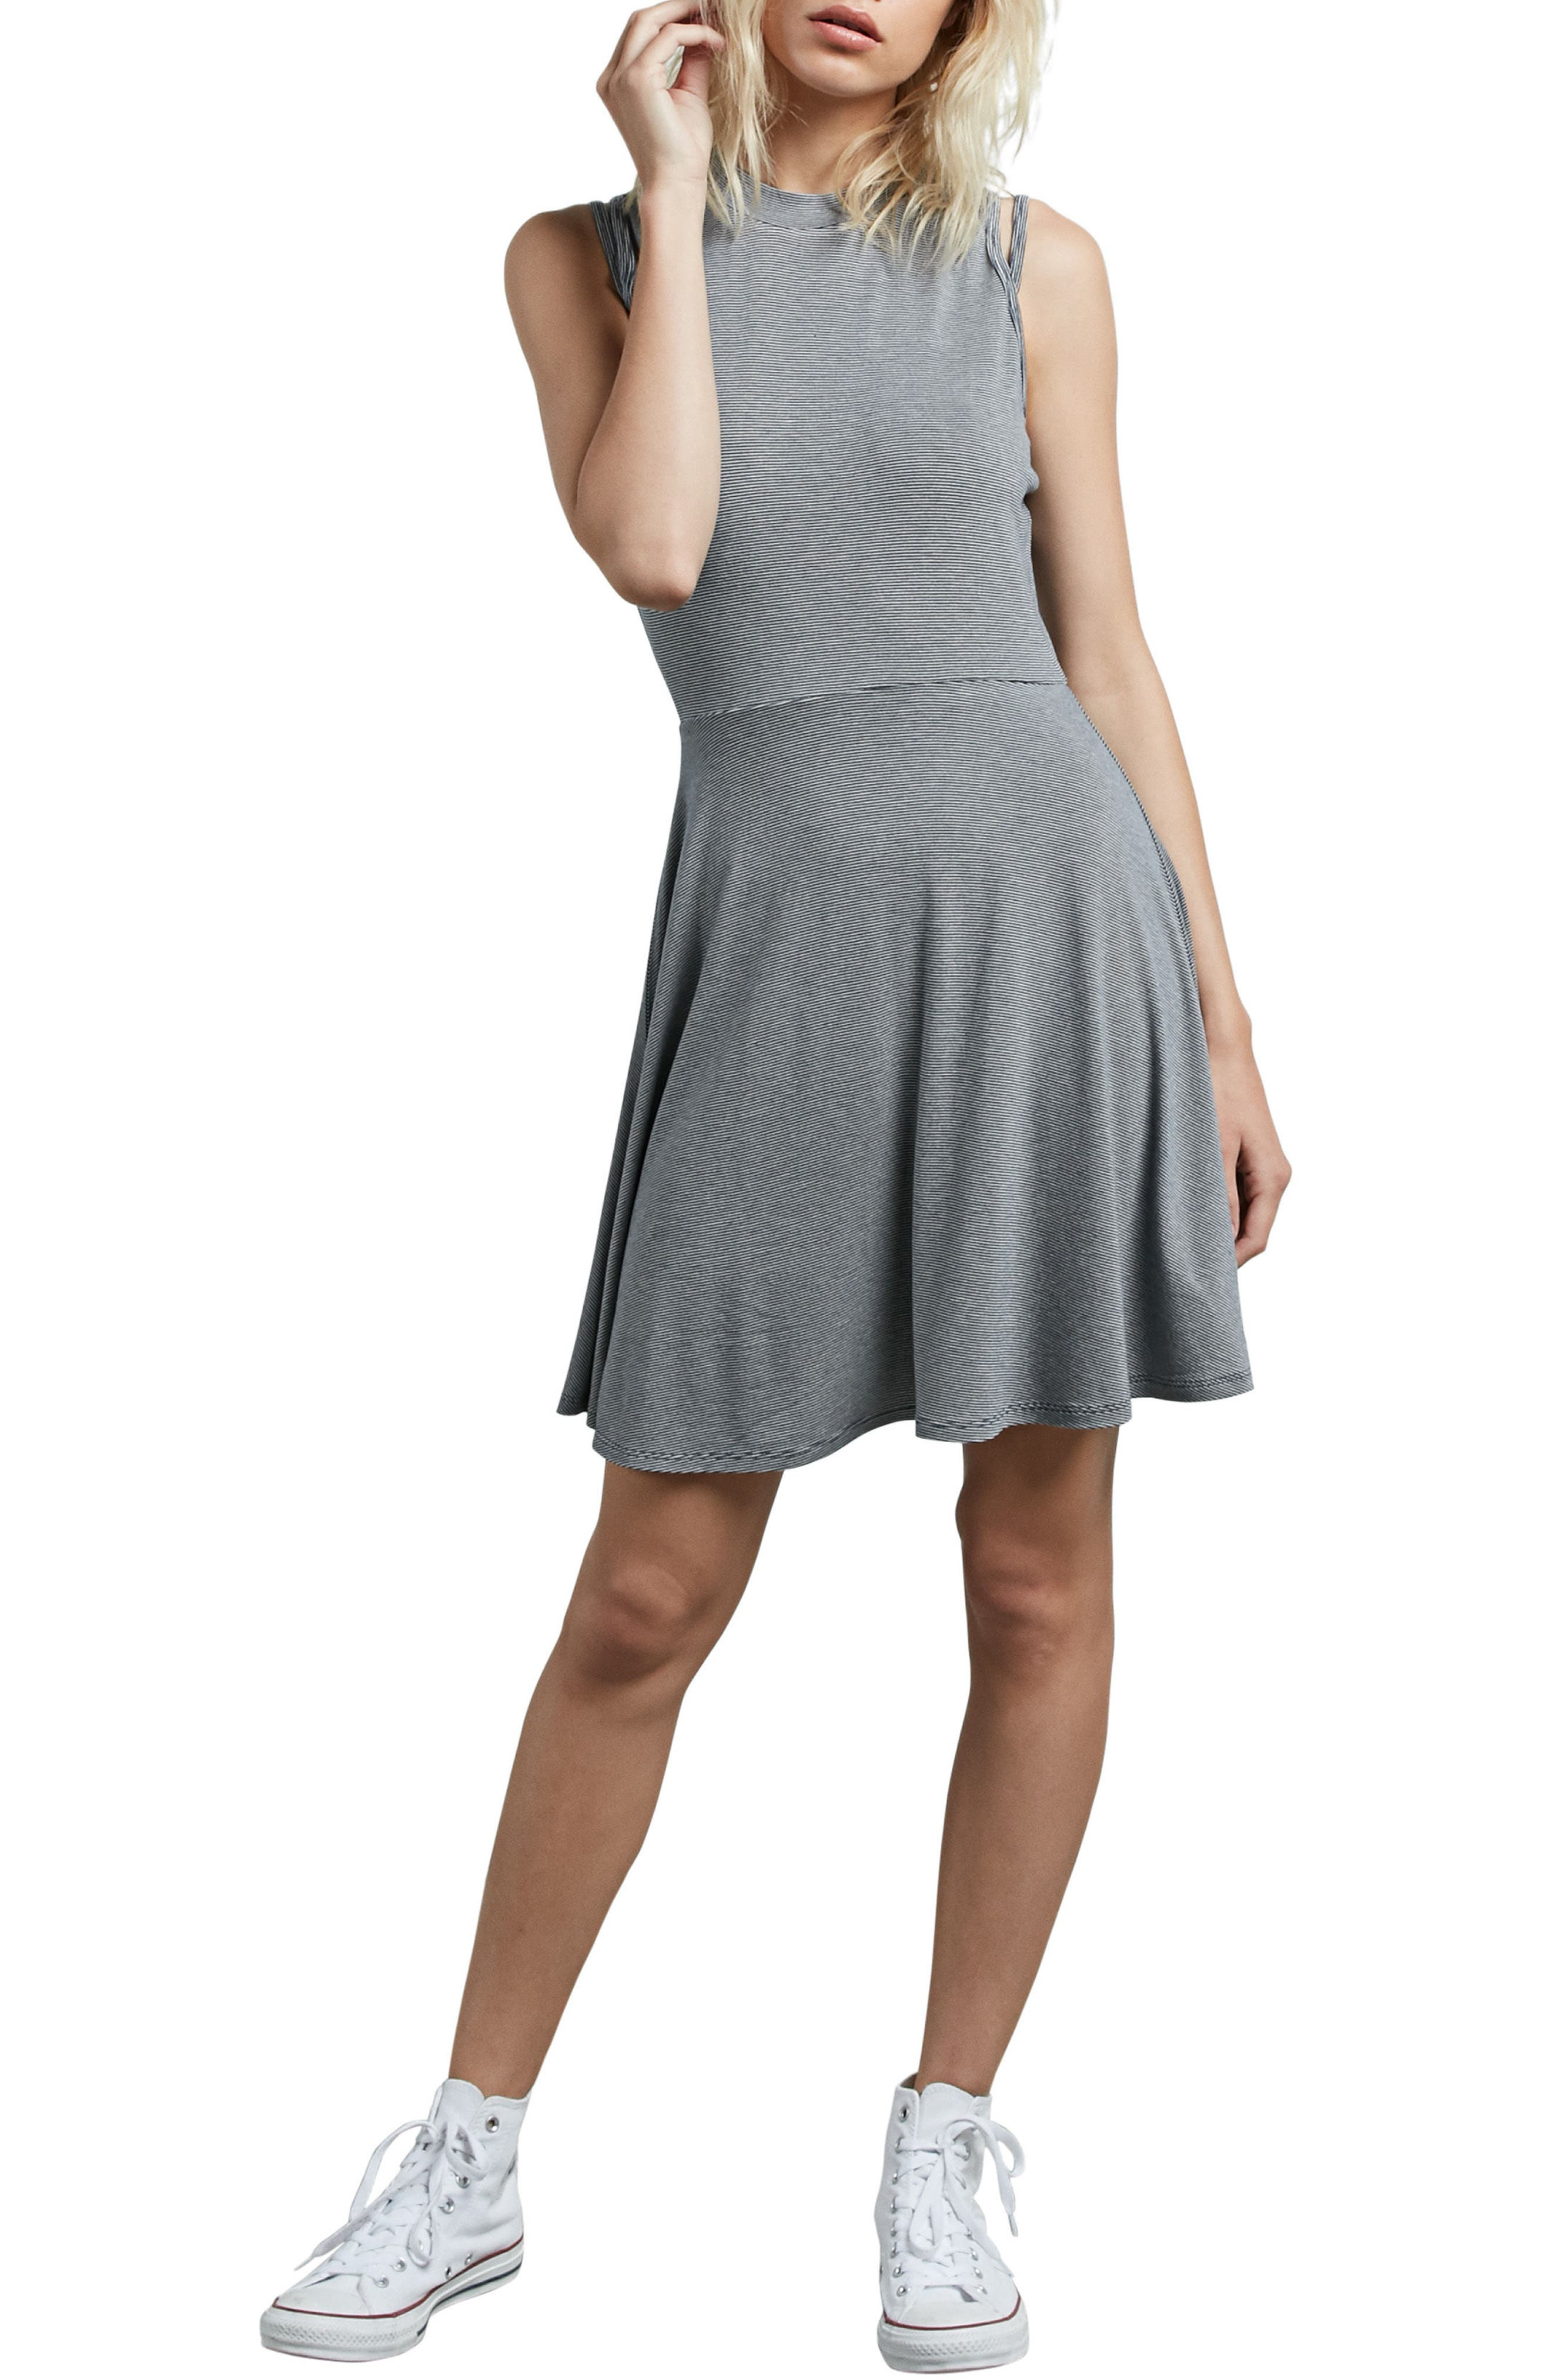 Open Arms Strappy Skater Dress,                             Main thumbnail 1, color,                             Navy Vnt